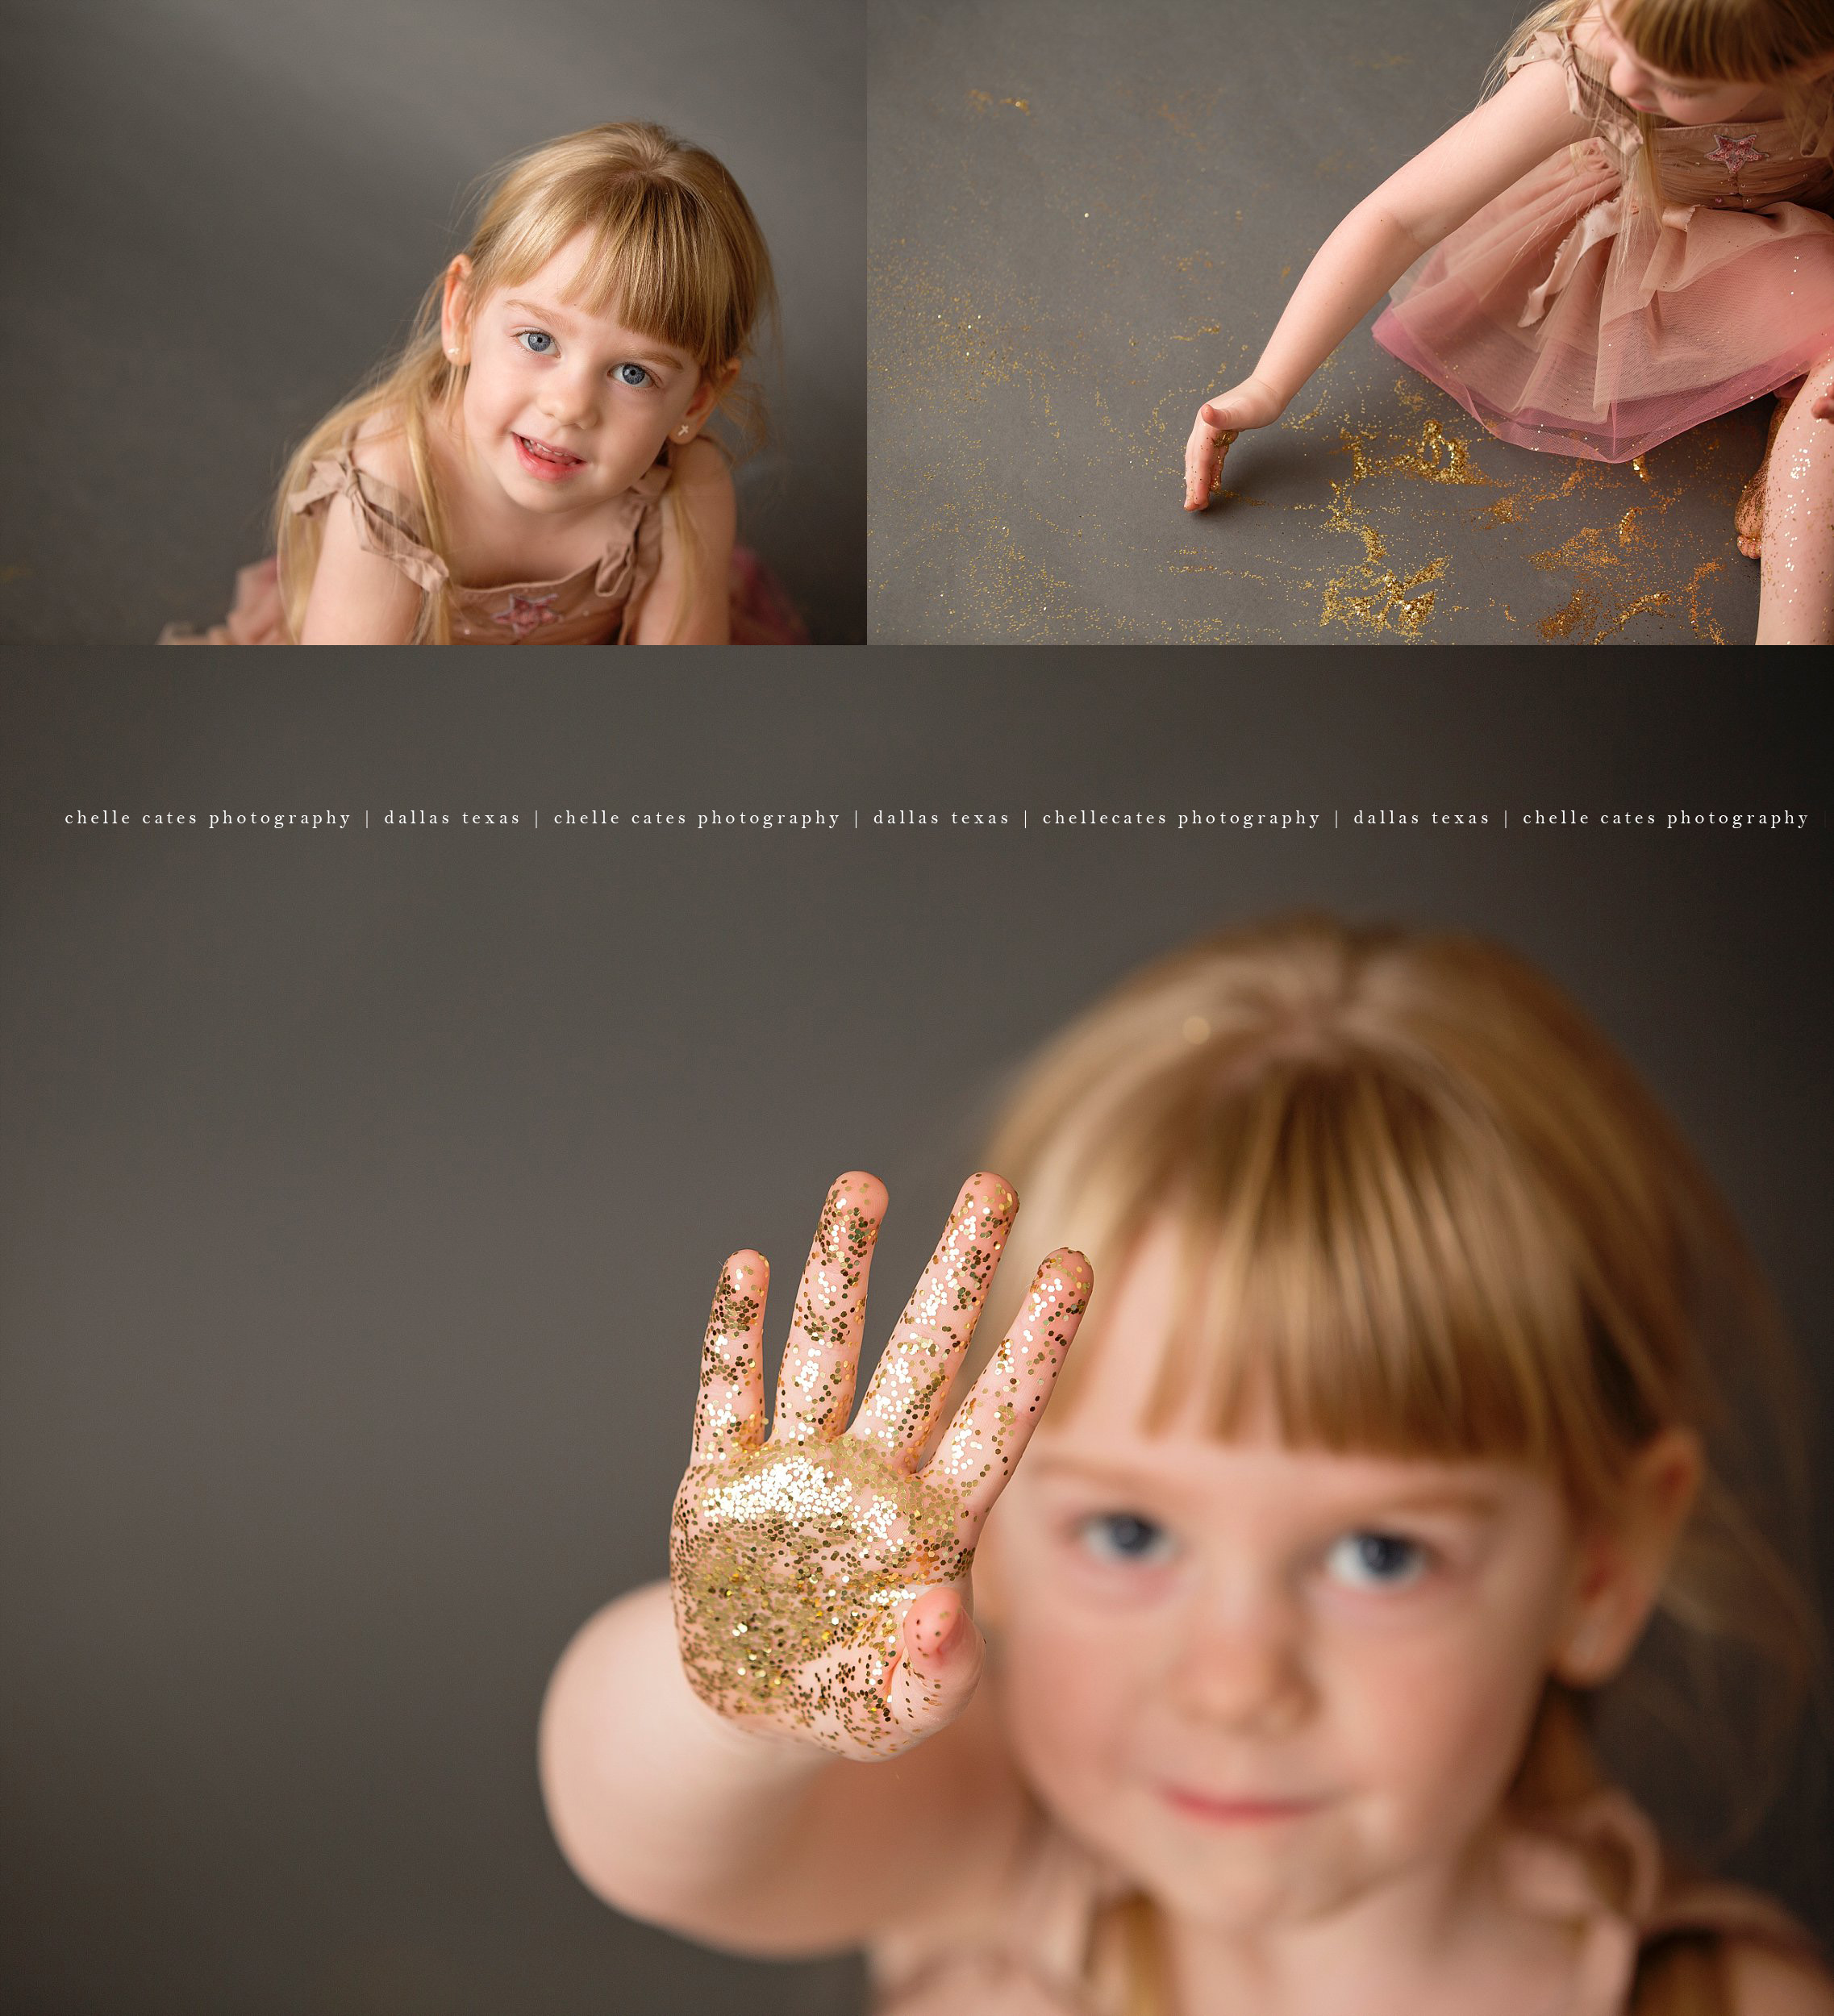 3 image collage of 4 year old little girl playing in gold glitter. Dressed in pink tutu du monde dress with her blonde hair braided on each side of her face. Photographed on Savage Thunder Gray seamless paper, her blue eyes were super bright. Photos taken at the studio of Chelle Cates Photography in Dallas Texas.